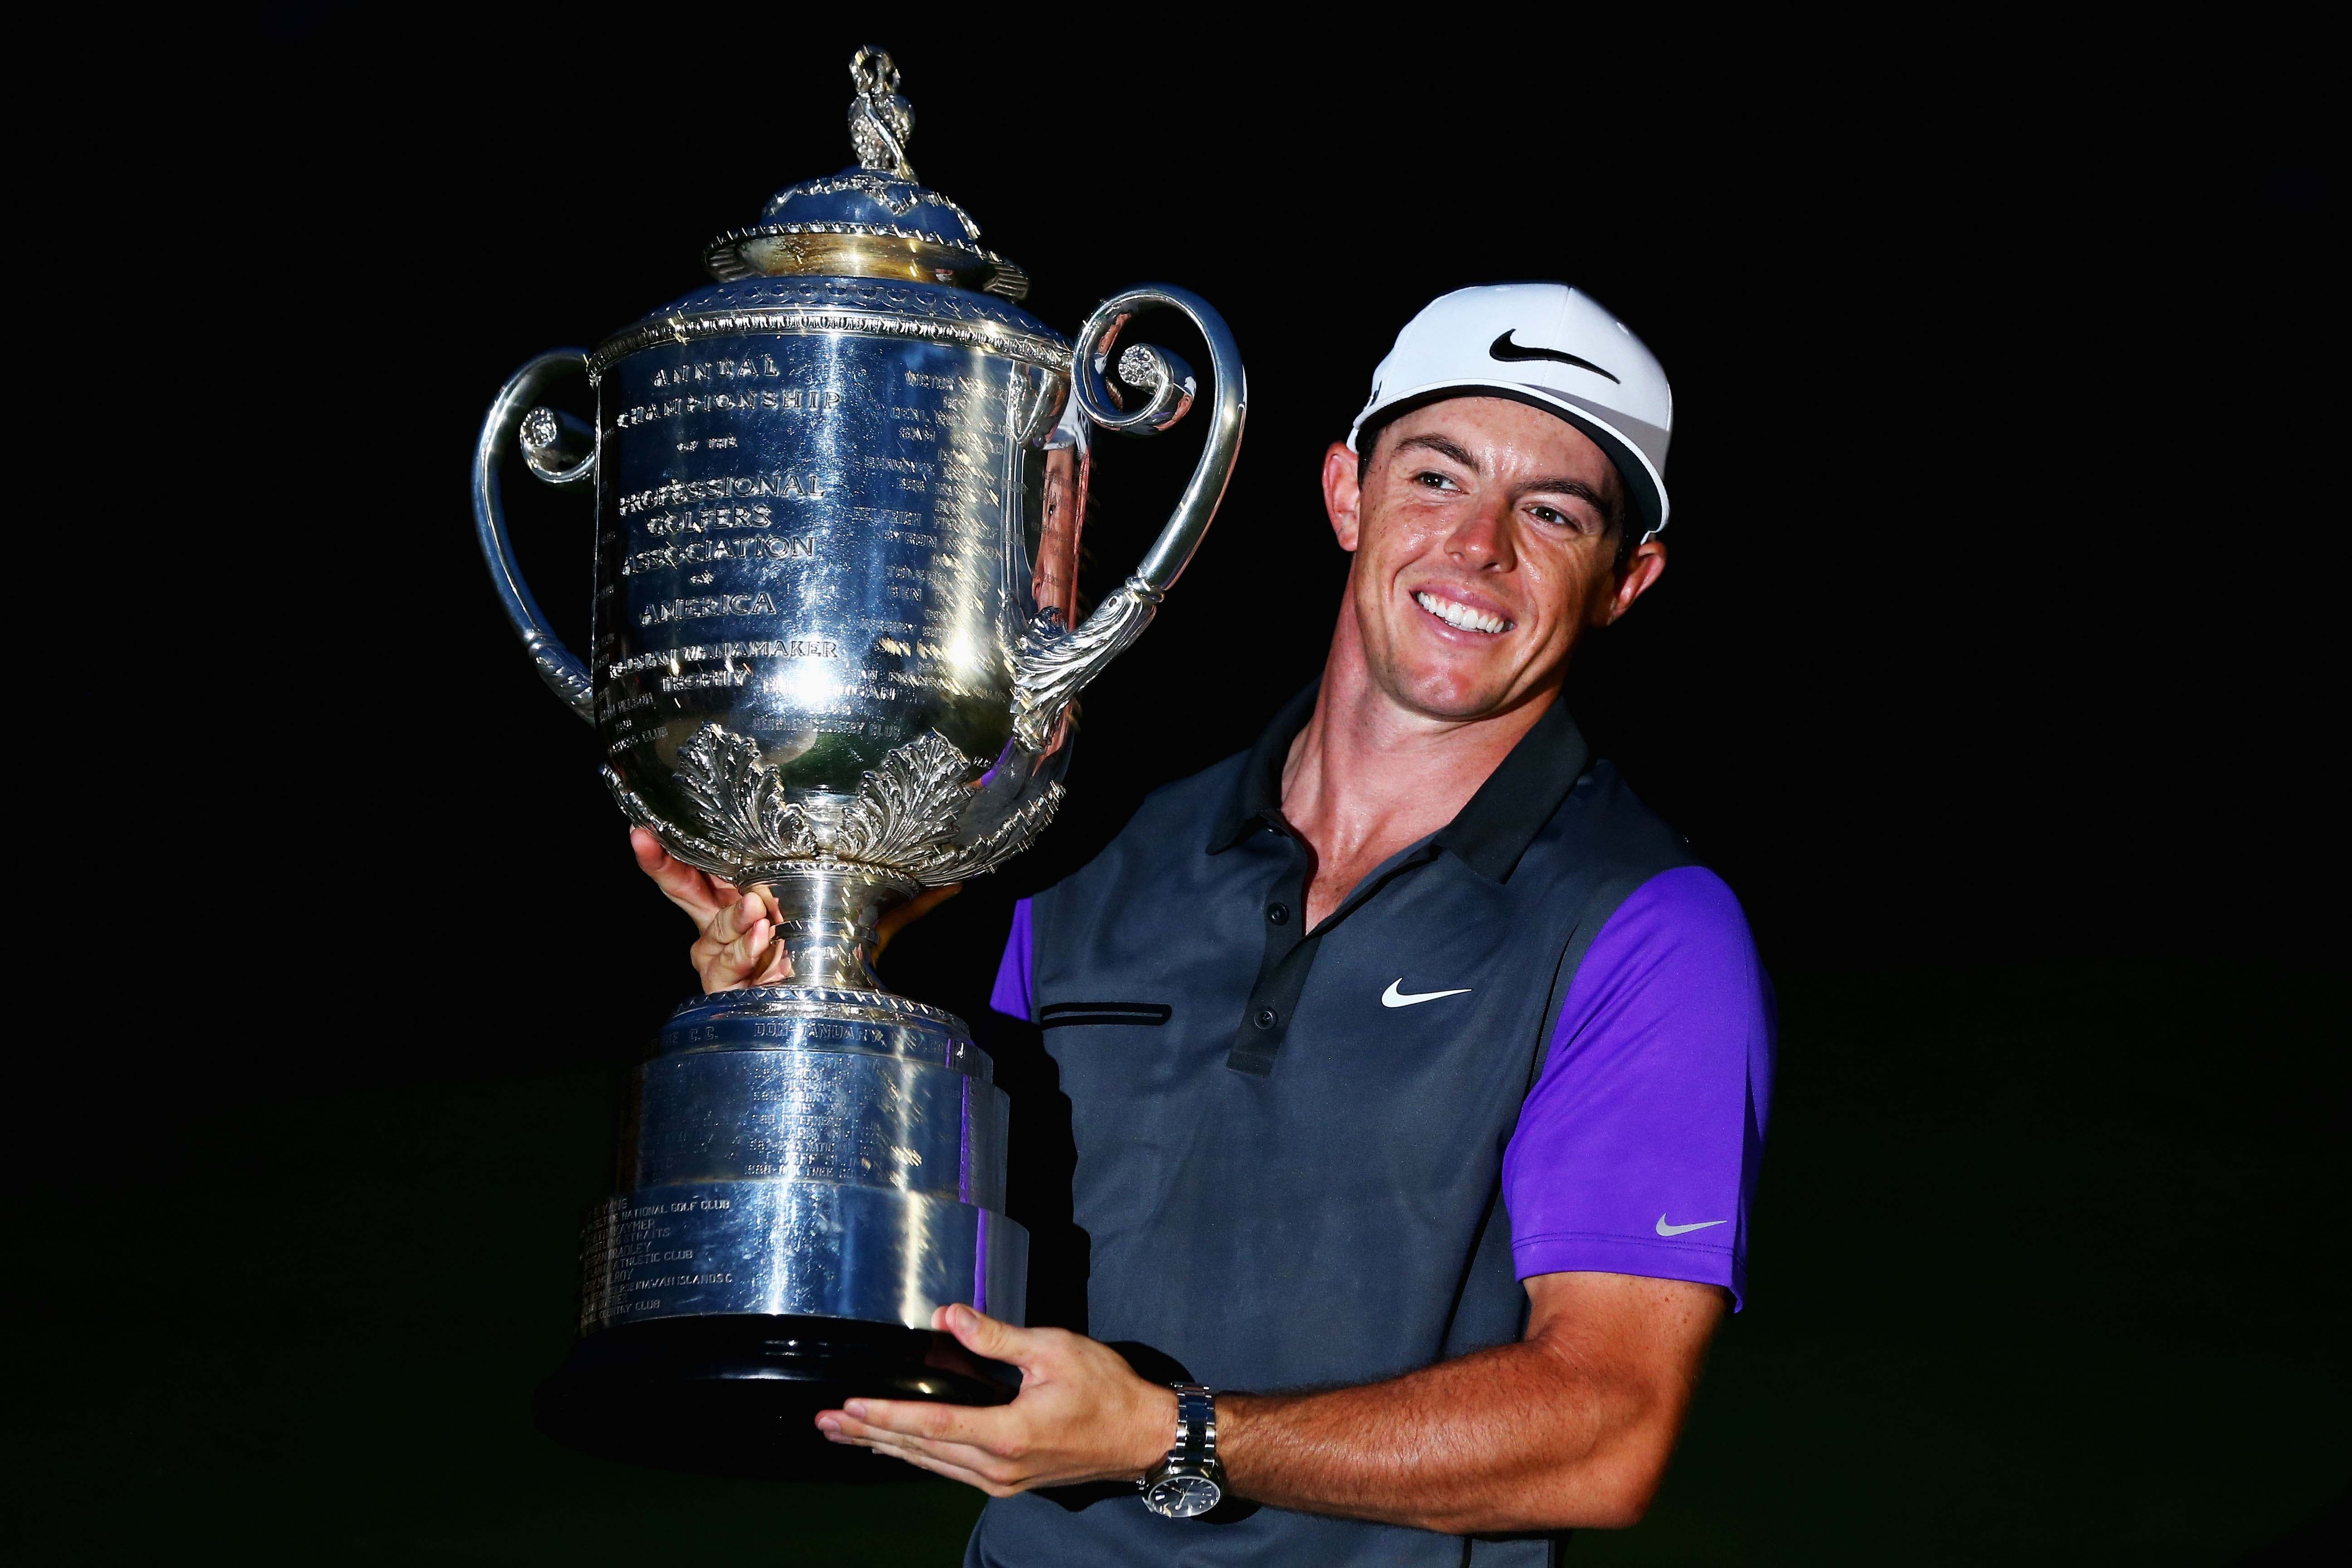 Rory McIlroy winning the PGA in the dark ... or